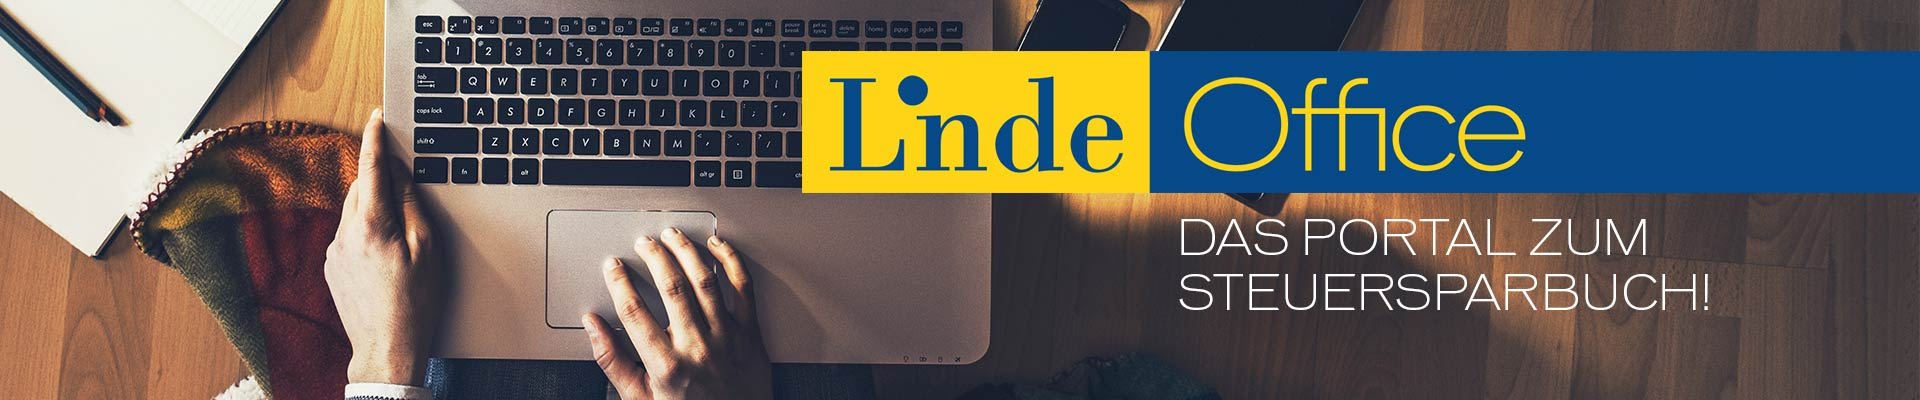 LindeOffice